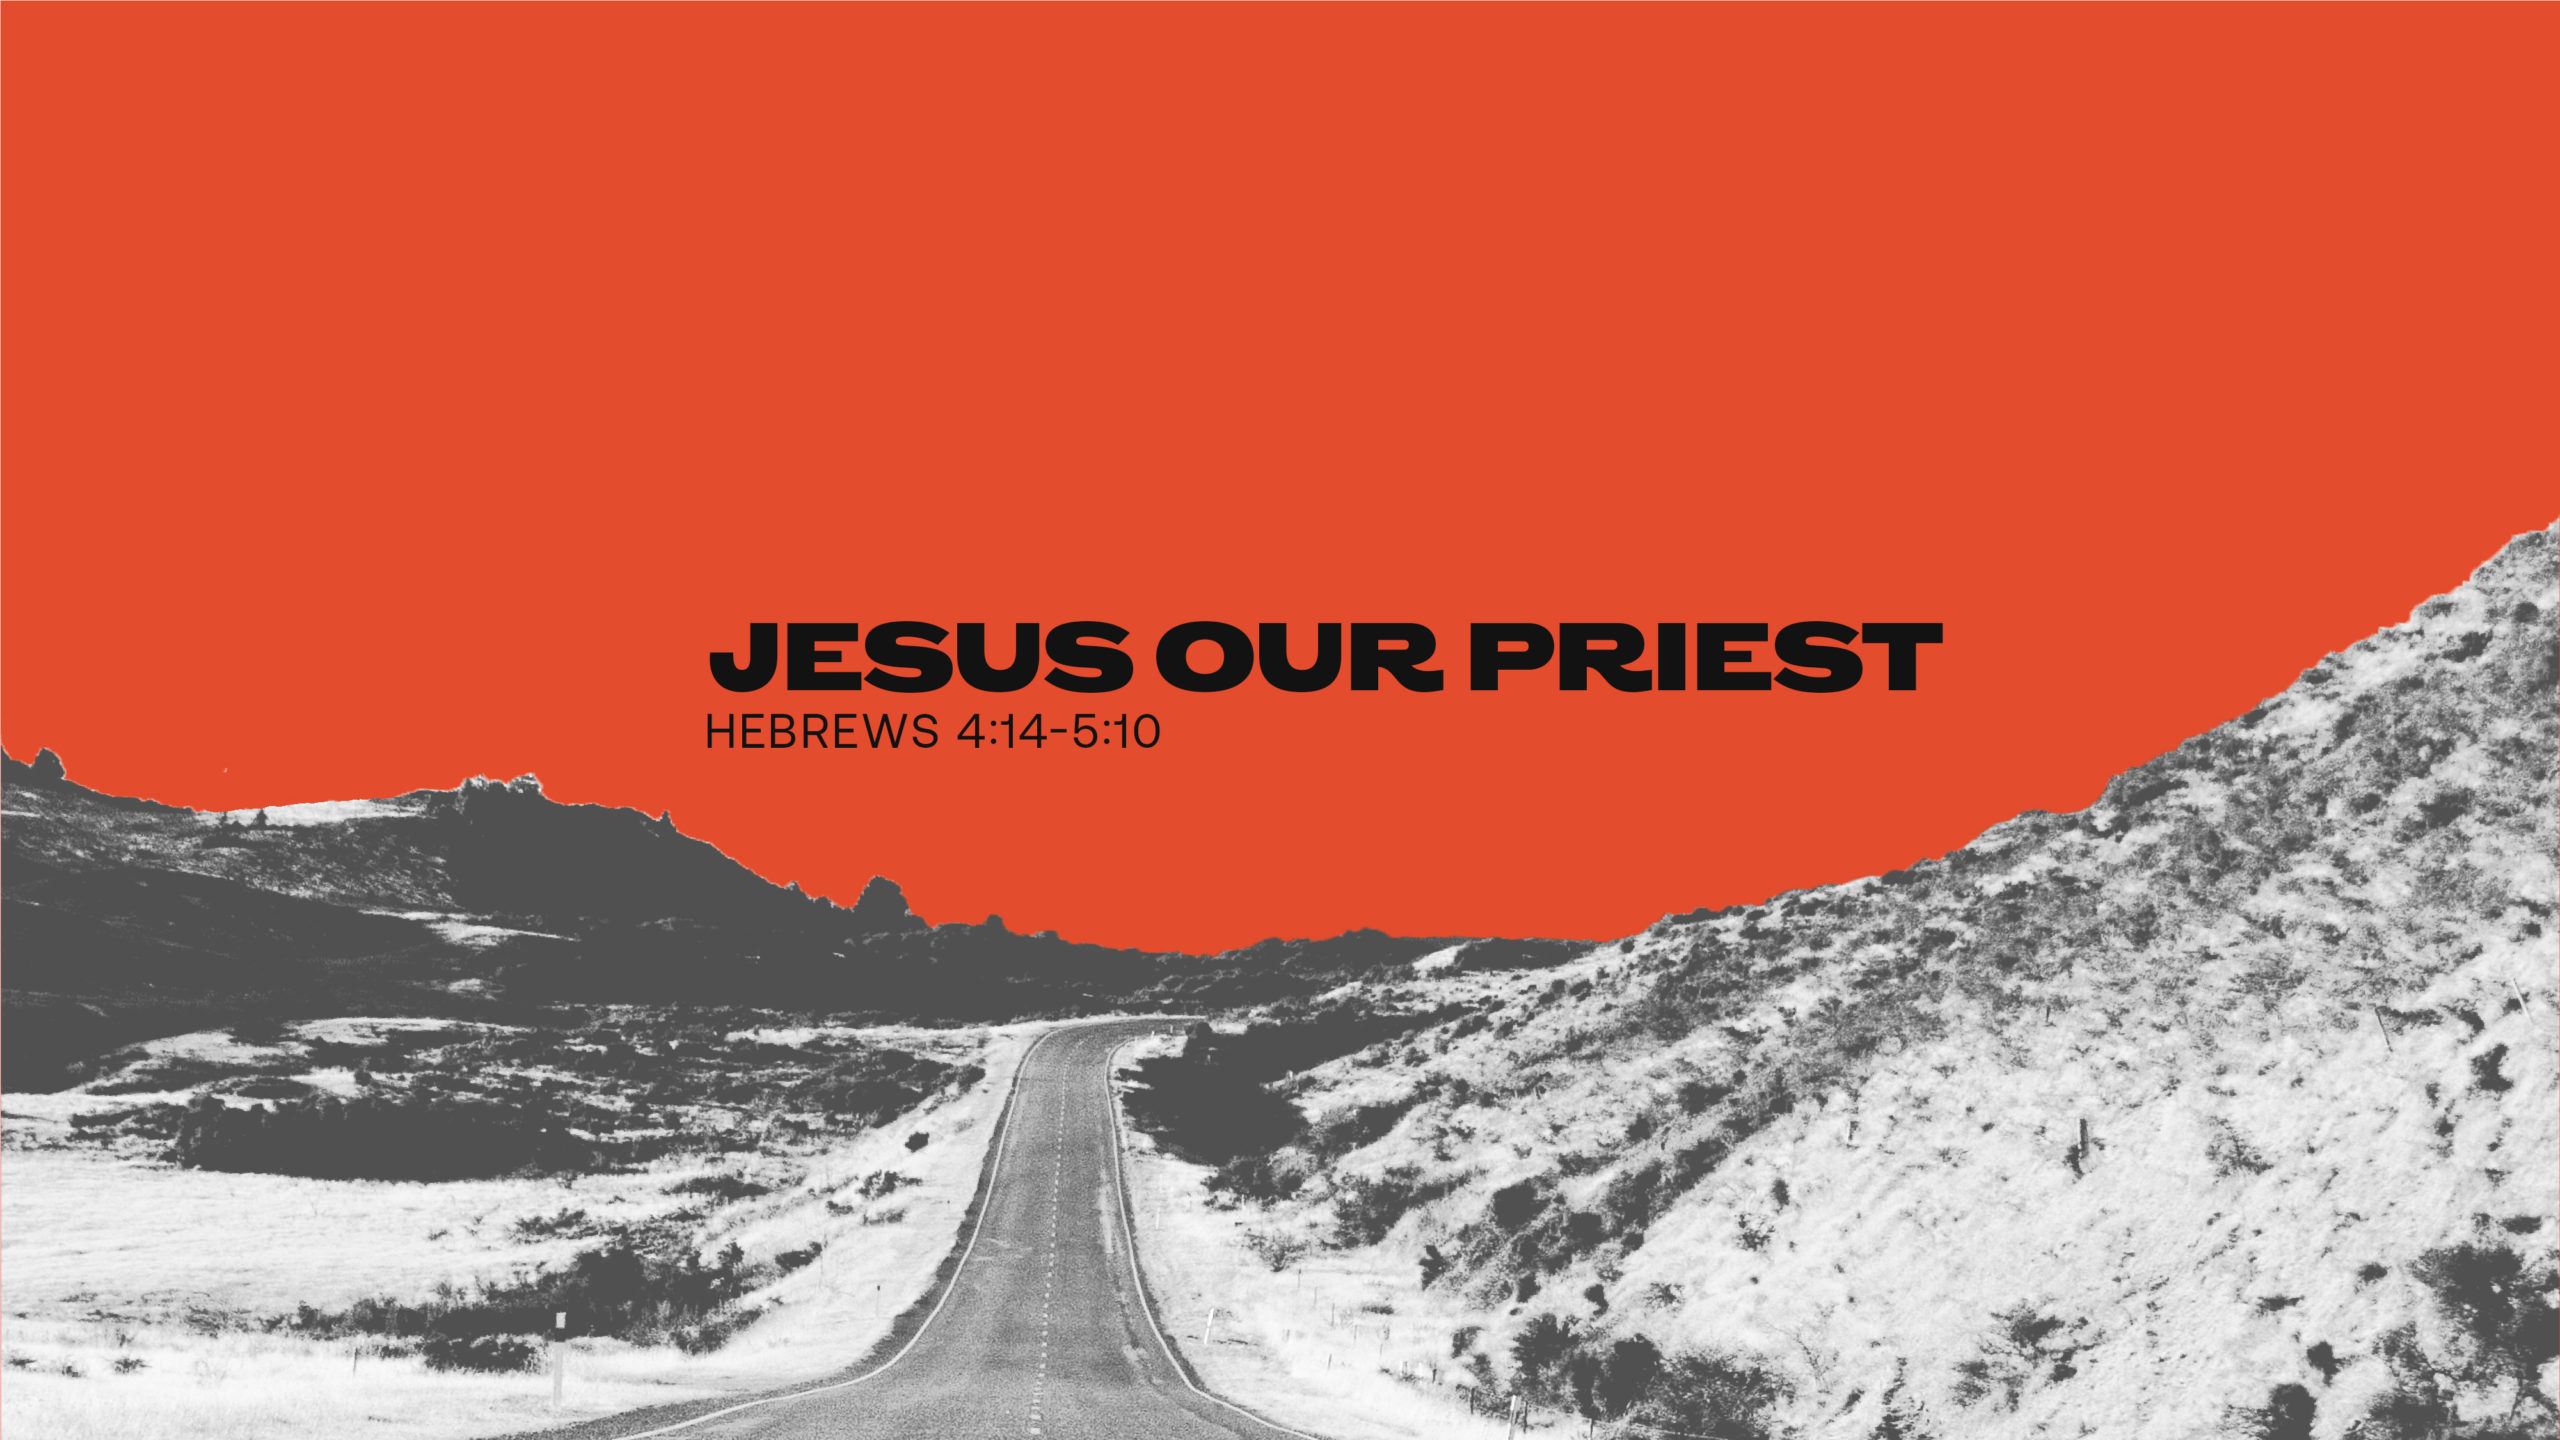 Jesus Our Priest